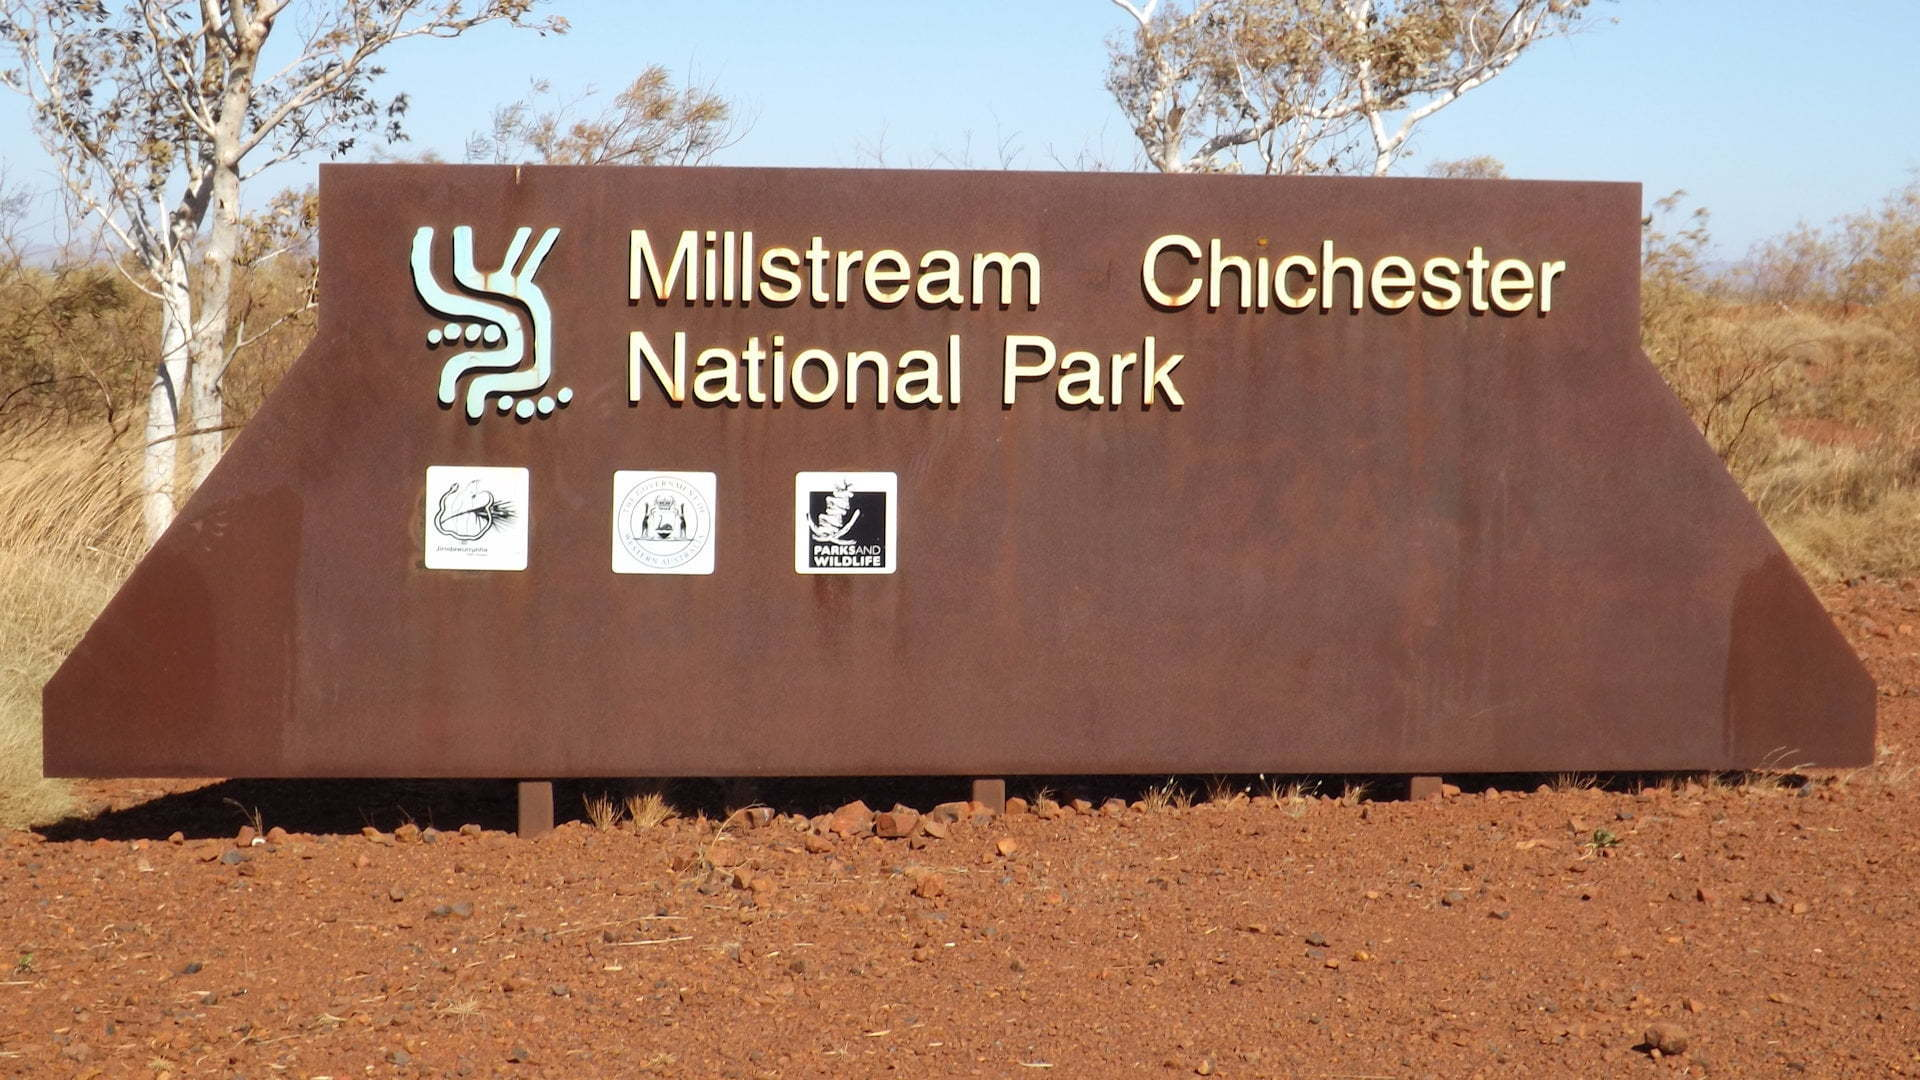 Millstream Chichester National Park